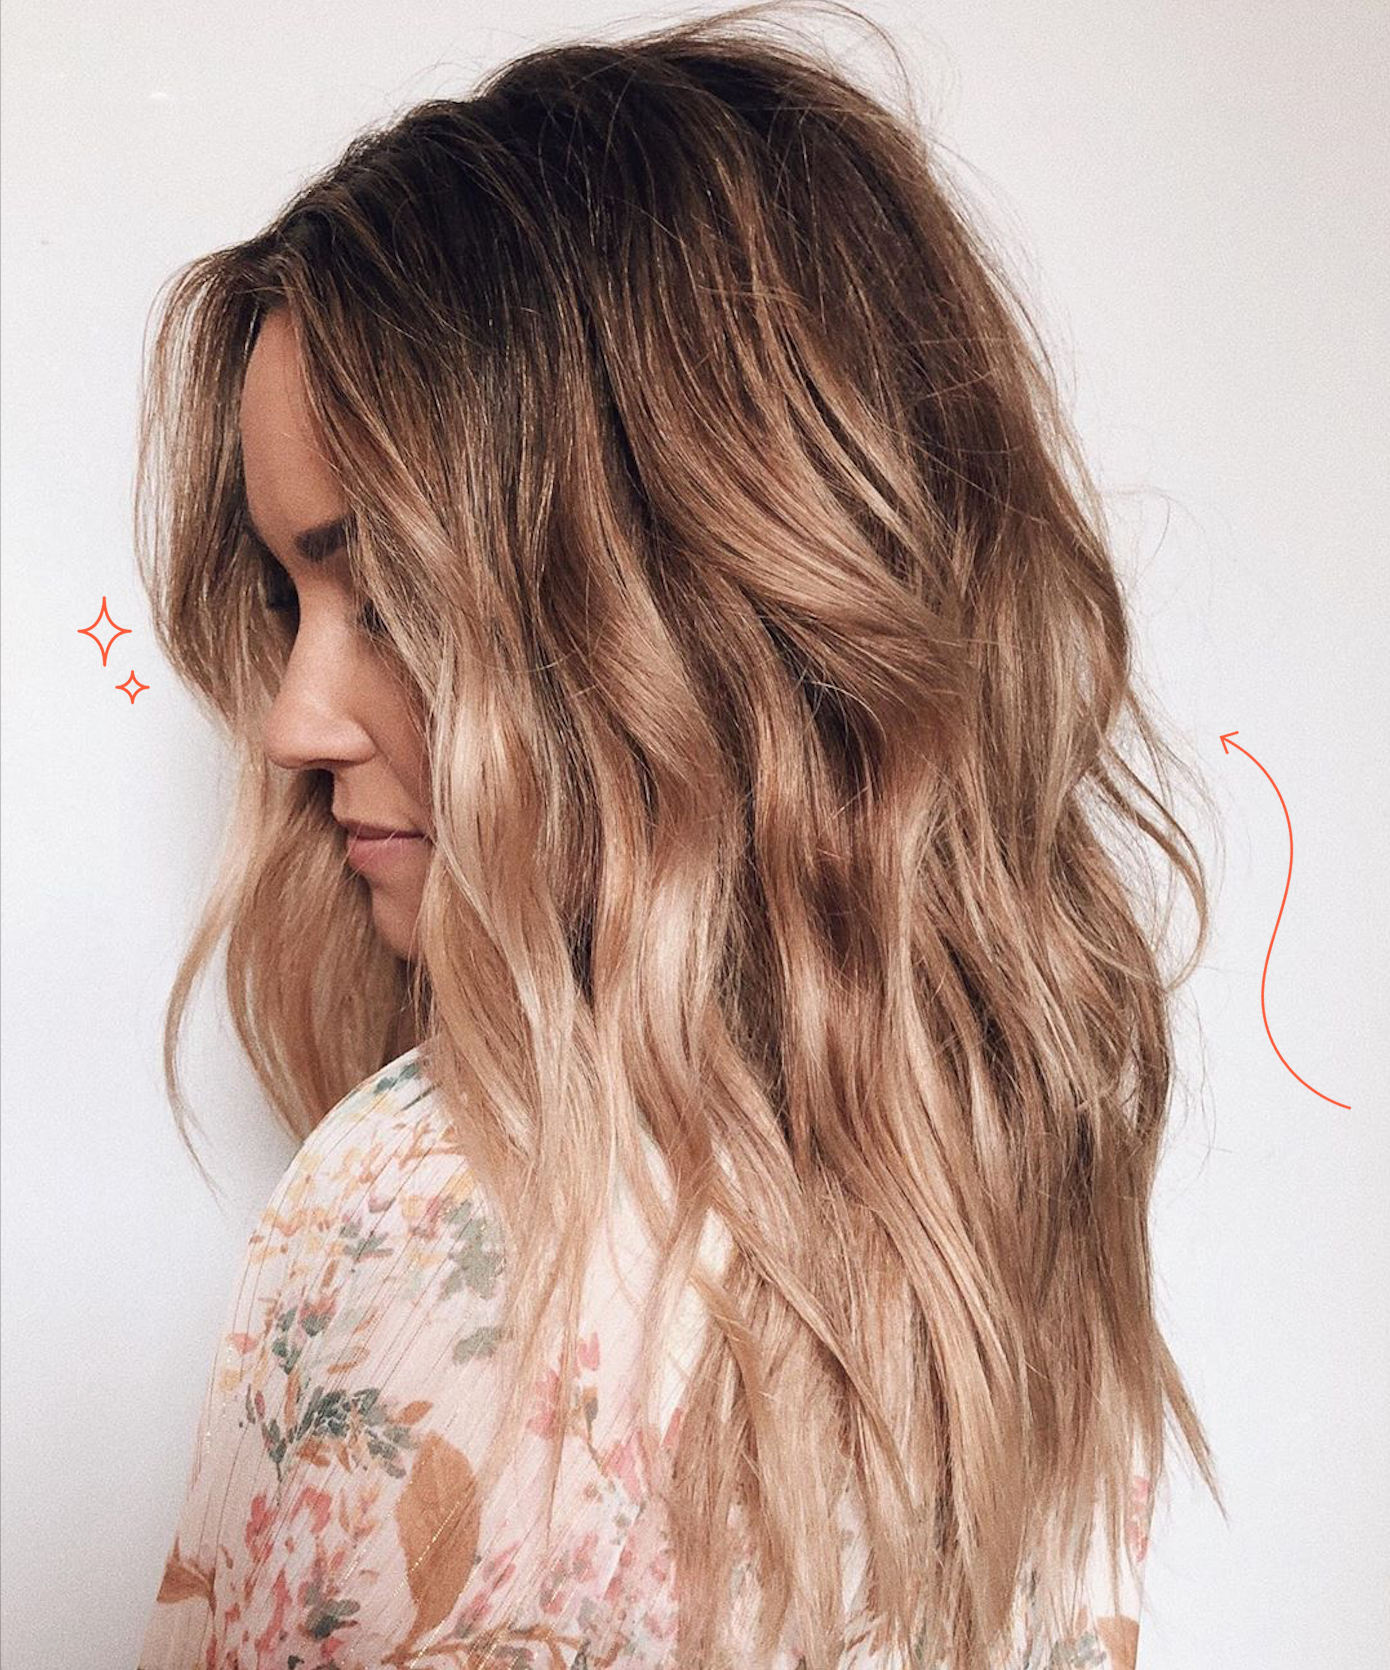 11 Beach Waves Tutorials for All Hair Textures - How to Get Beach Waves